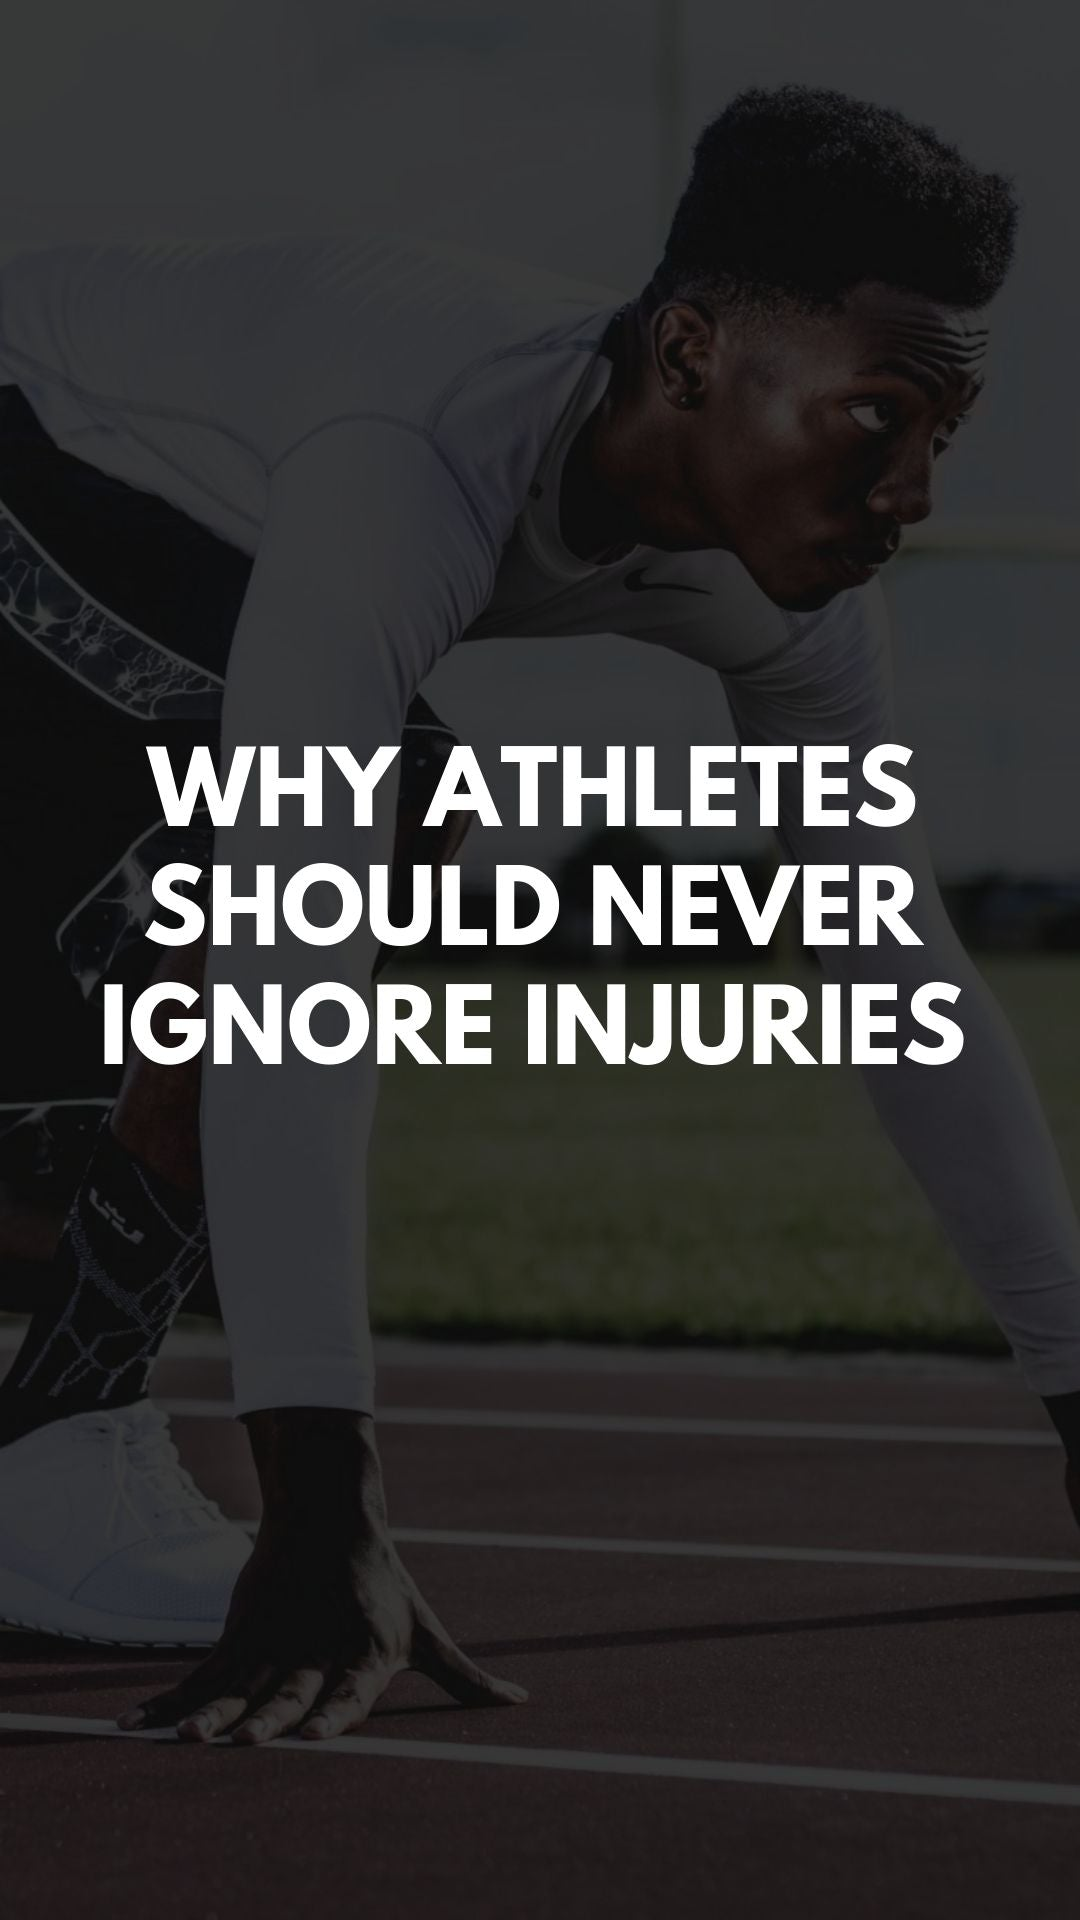 Why Athletes Should Never Ignore Injuries